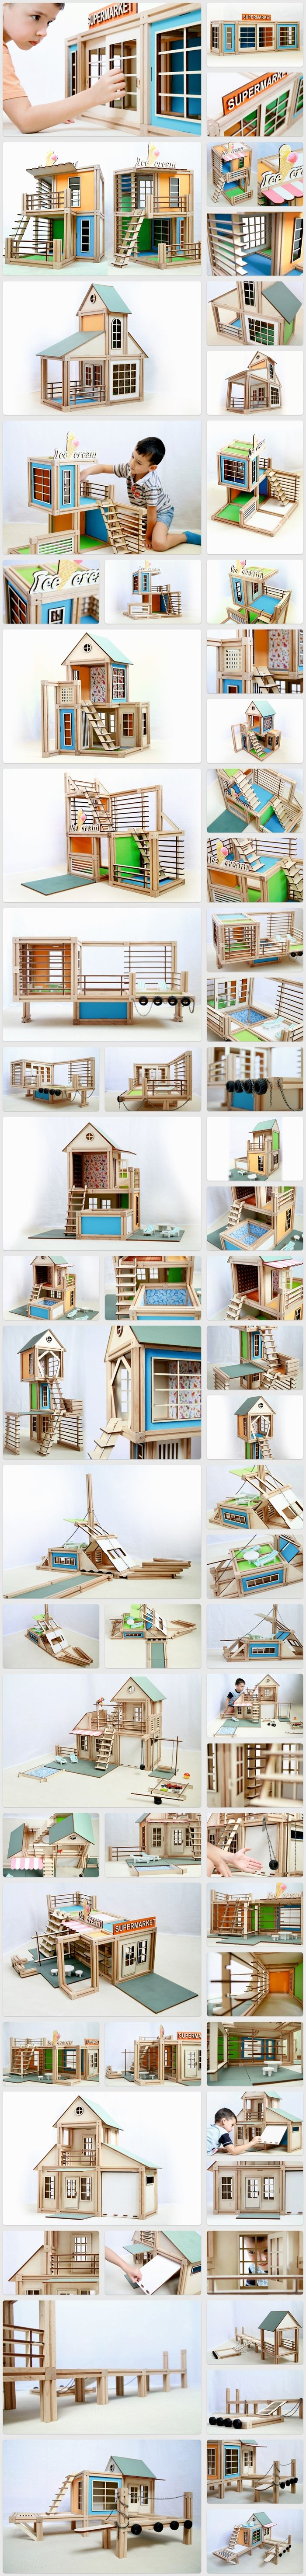 miniature furniture cardboardwood routers. 924 Best Miniature- Real Estate Images On Pinterest | Doll Houses, Dollhouse Miniatures And Dollhouses Miniature Furniture Cardboardwood Routers